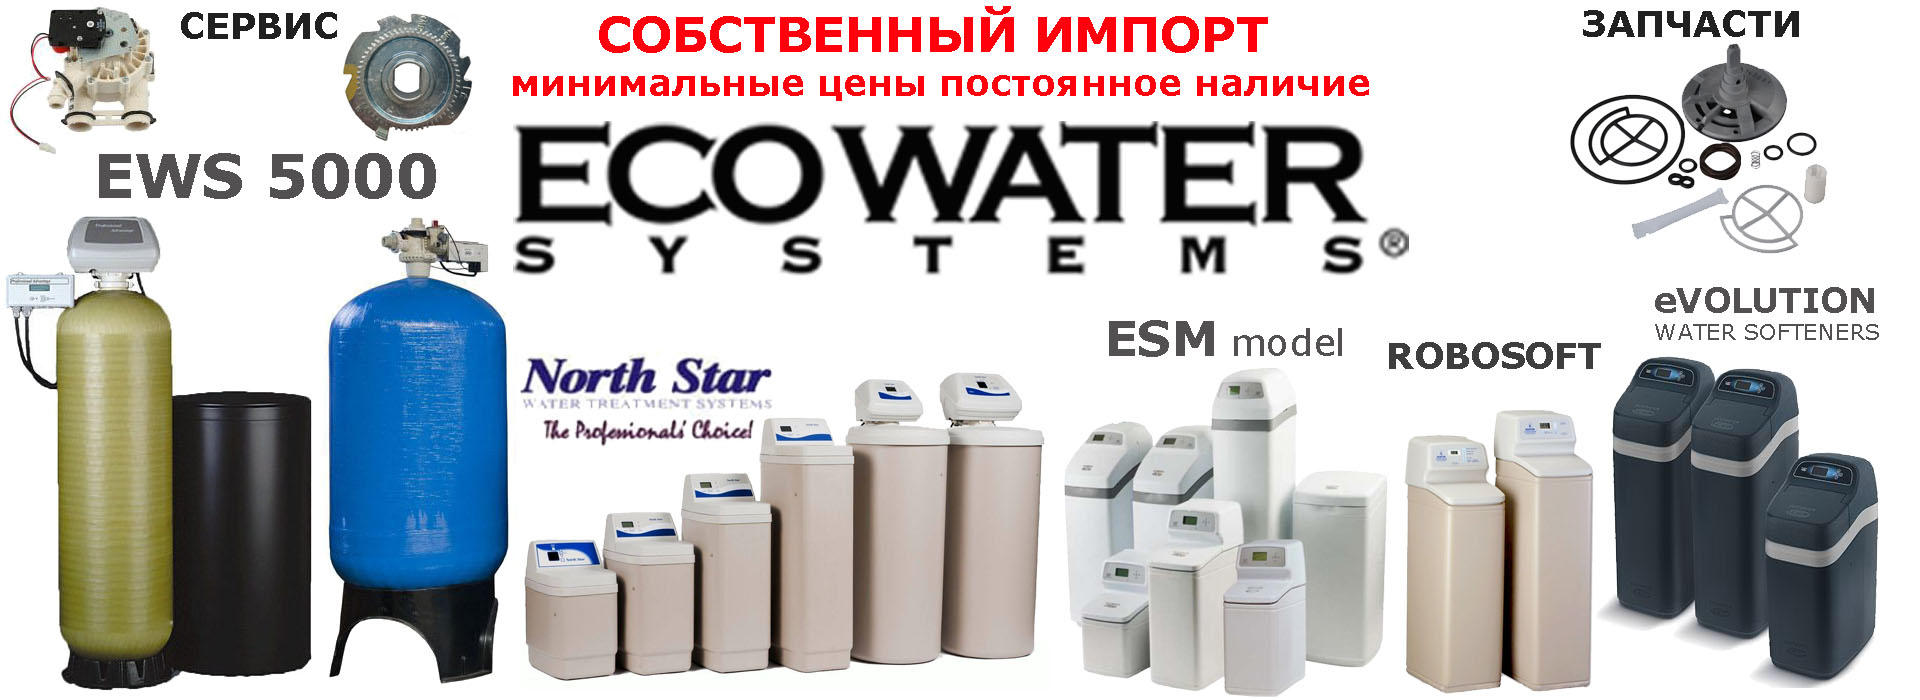 Import Ecowater